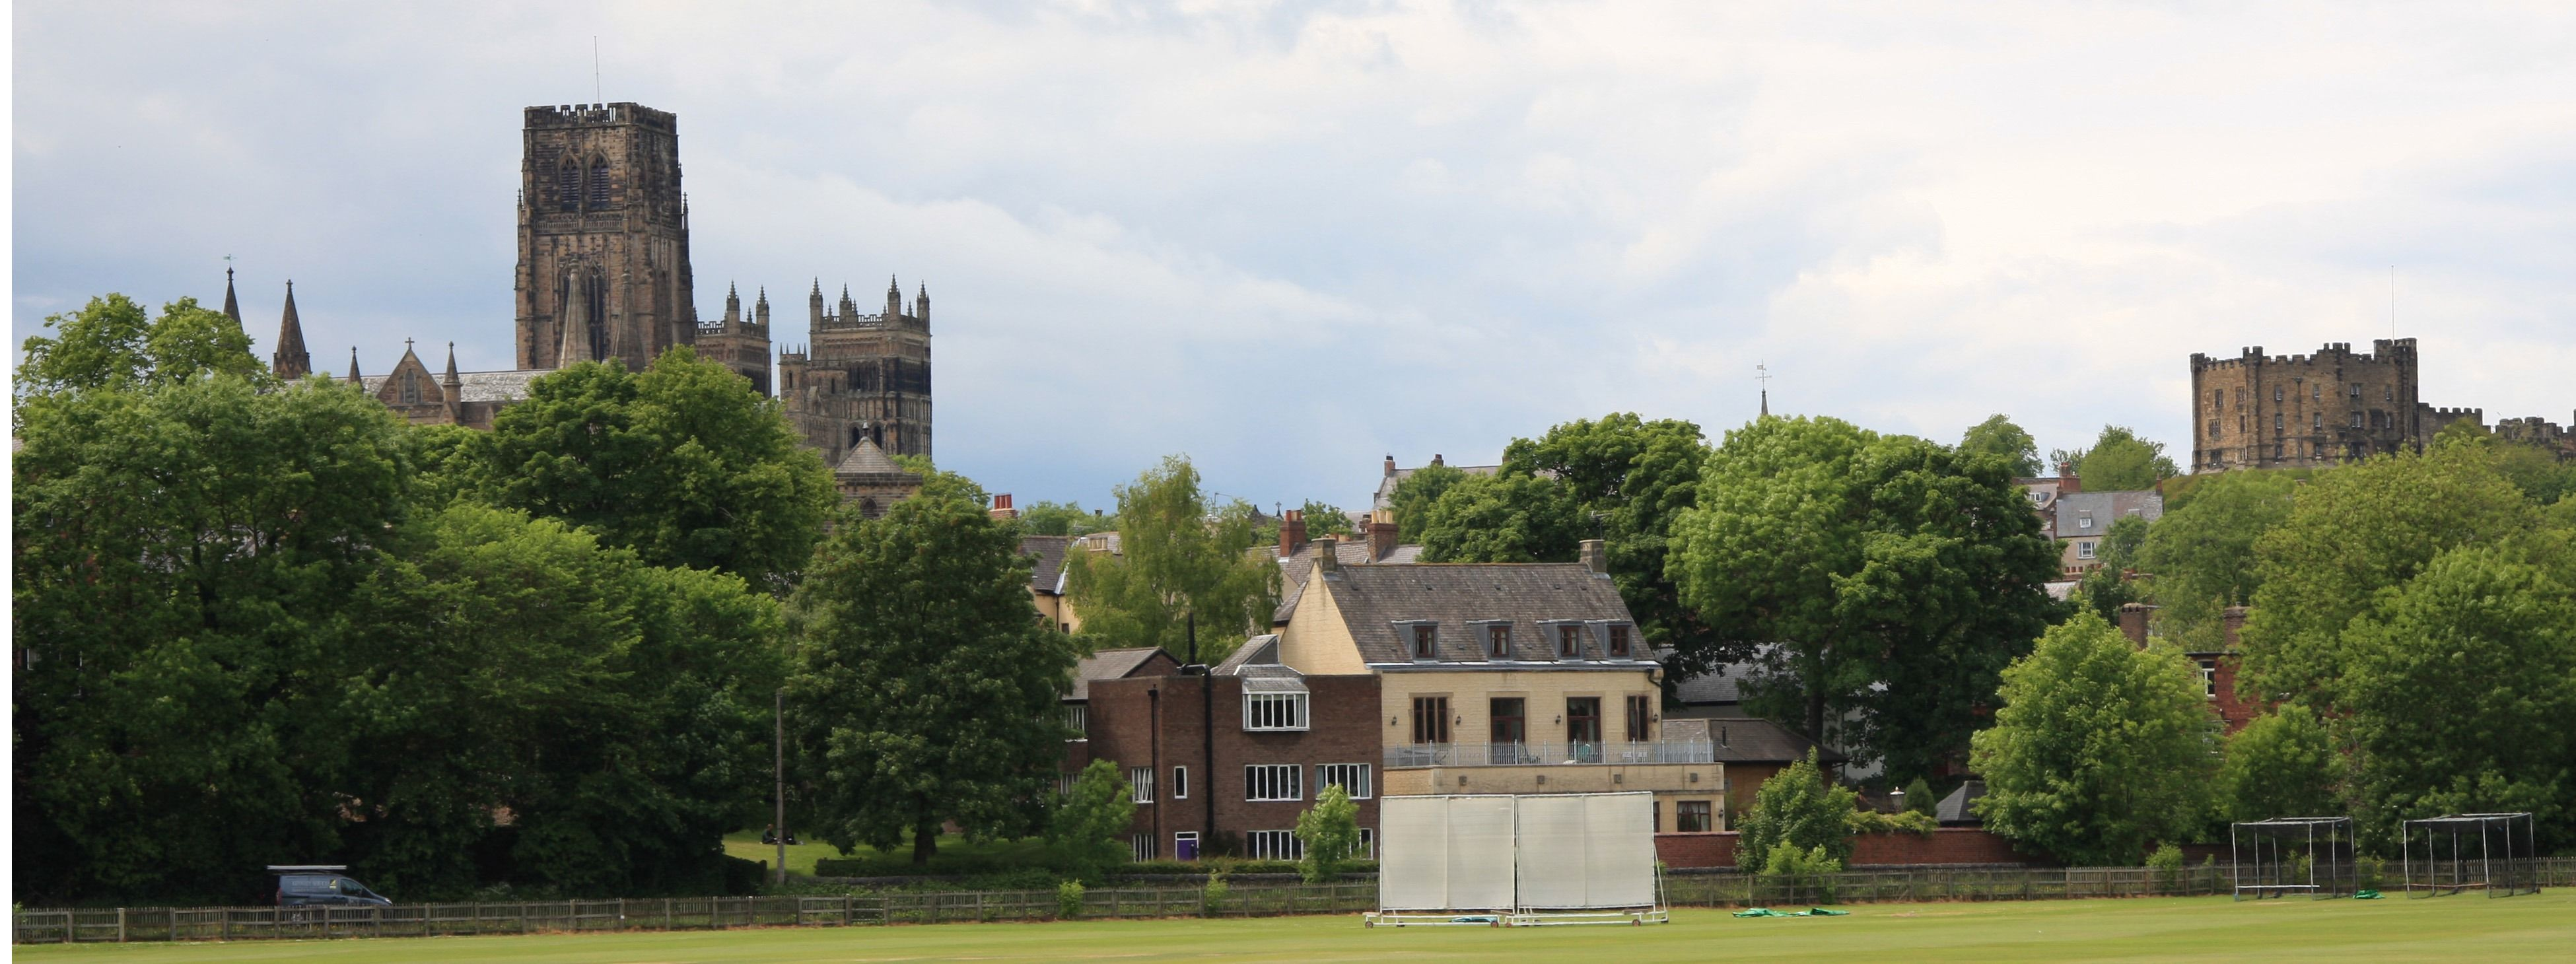 Cricket field with views of Durham Cathedral and castle behind